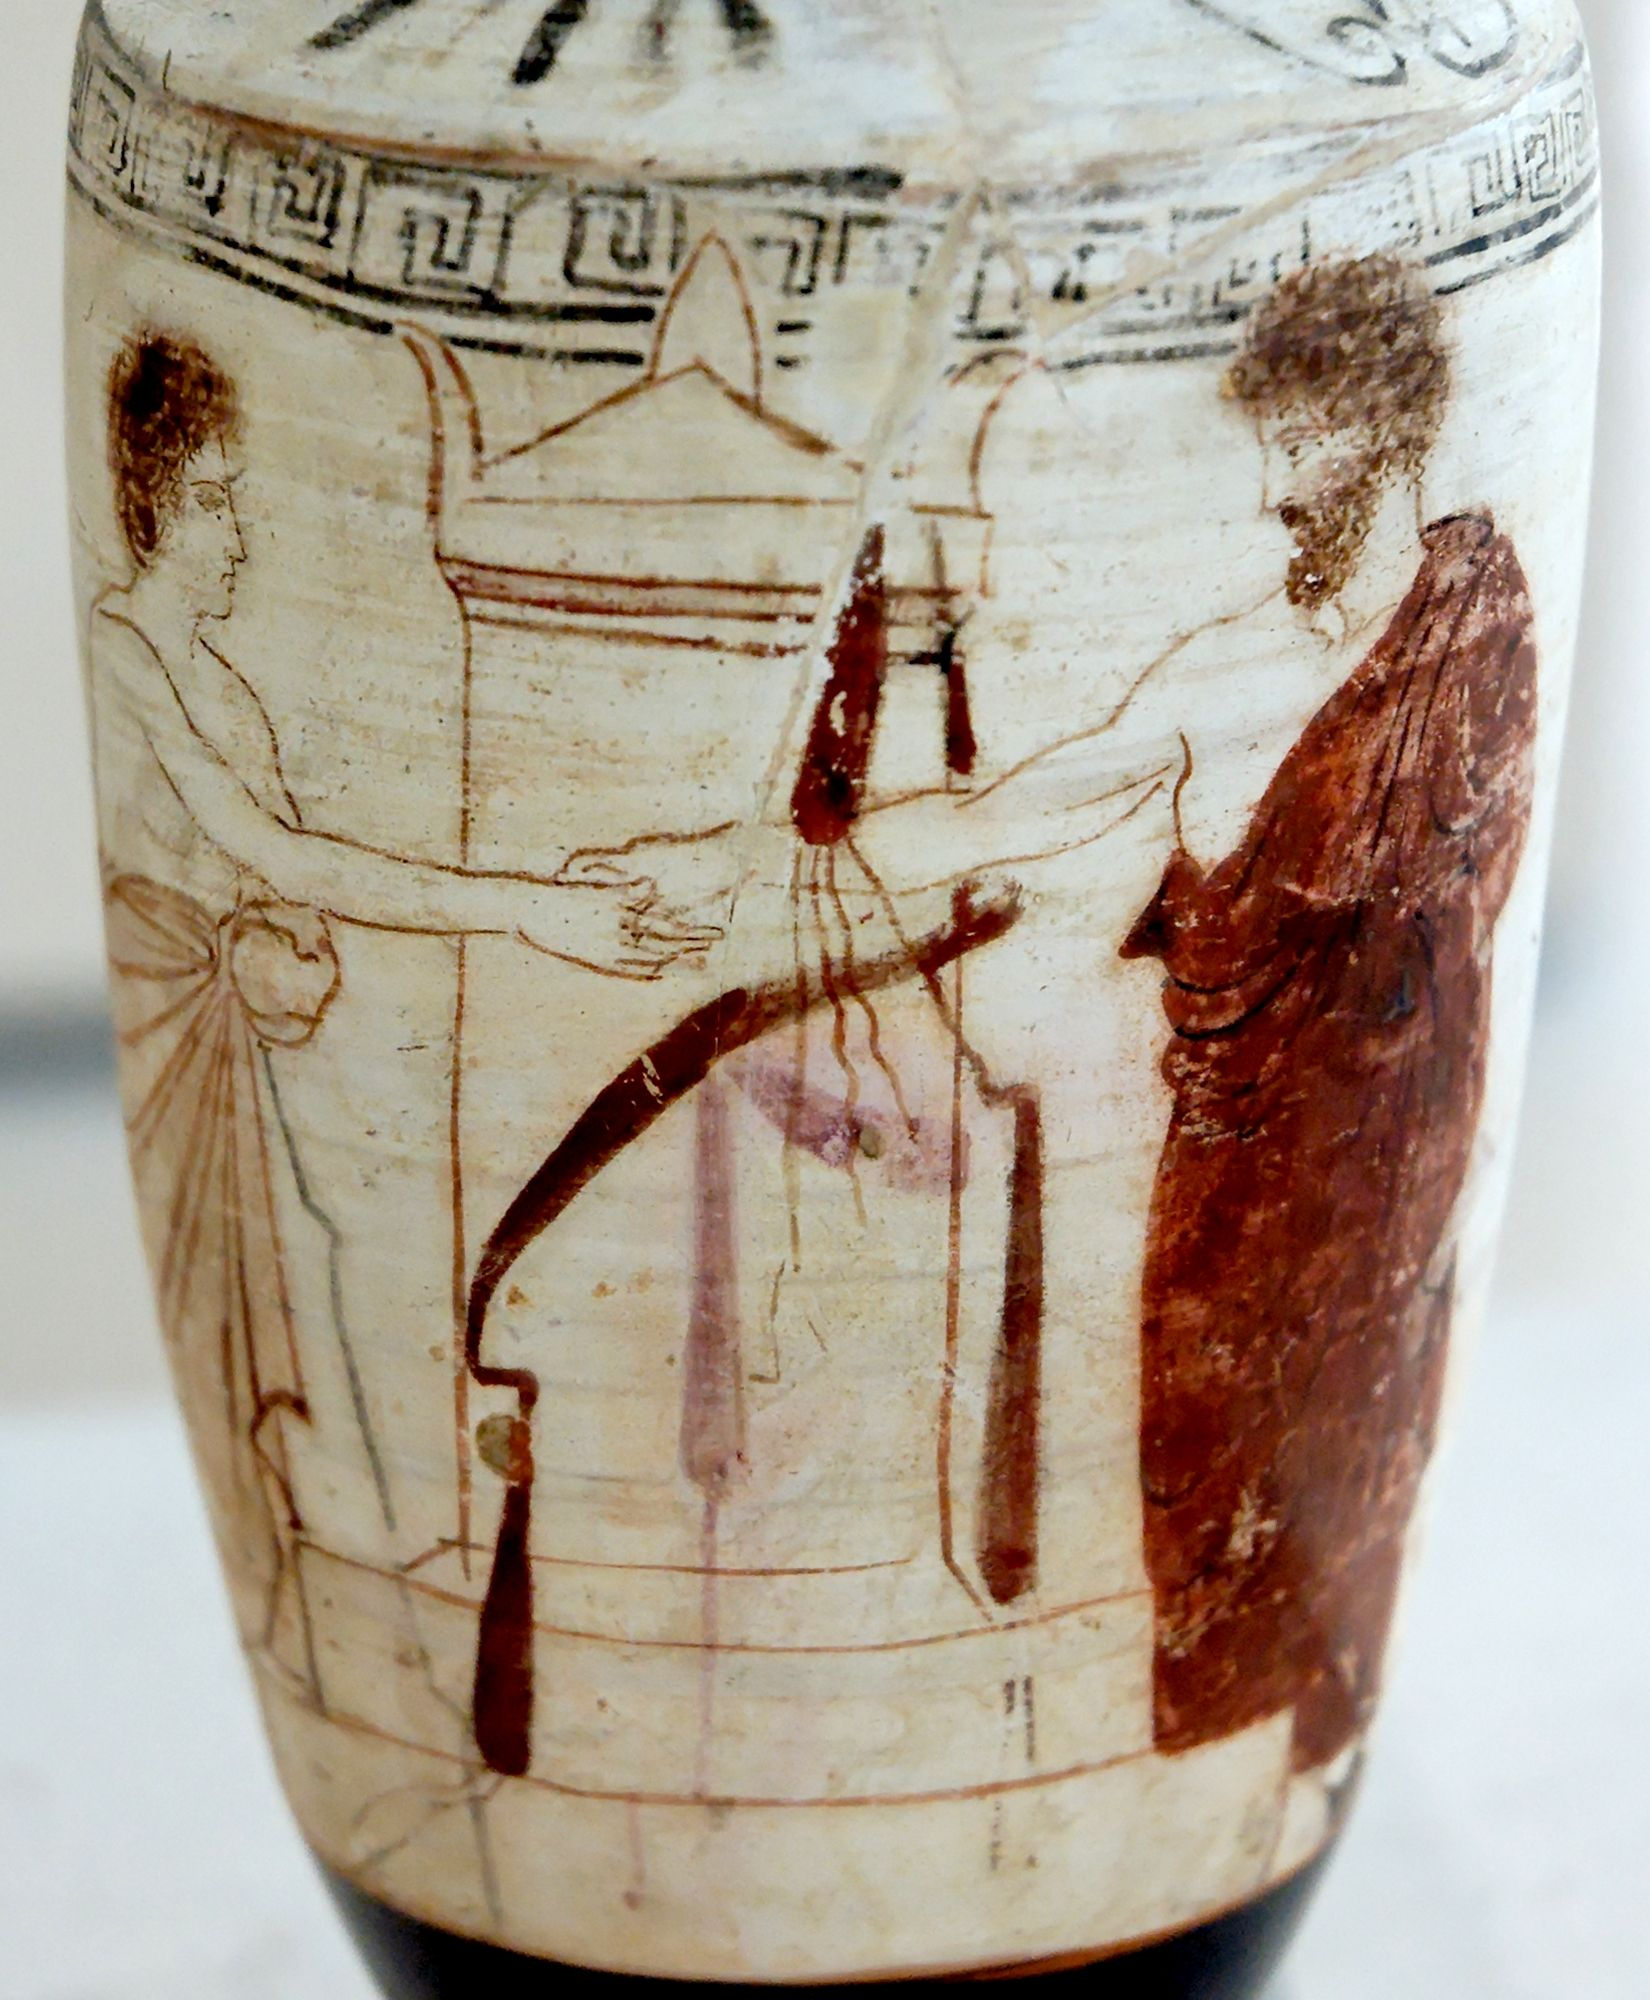 Dexiosis On An Attic Lekythos From The 5th Century Bc Ancient Greek Pottery Greek Pottery Ancient Pottery